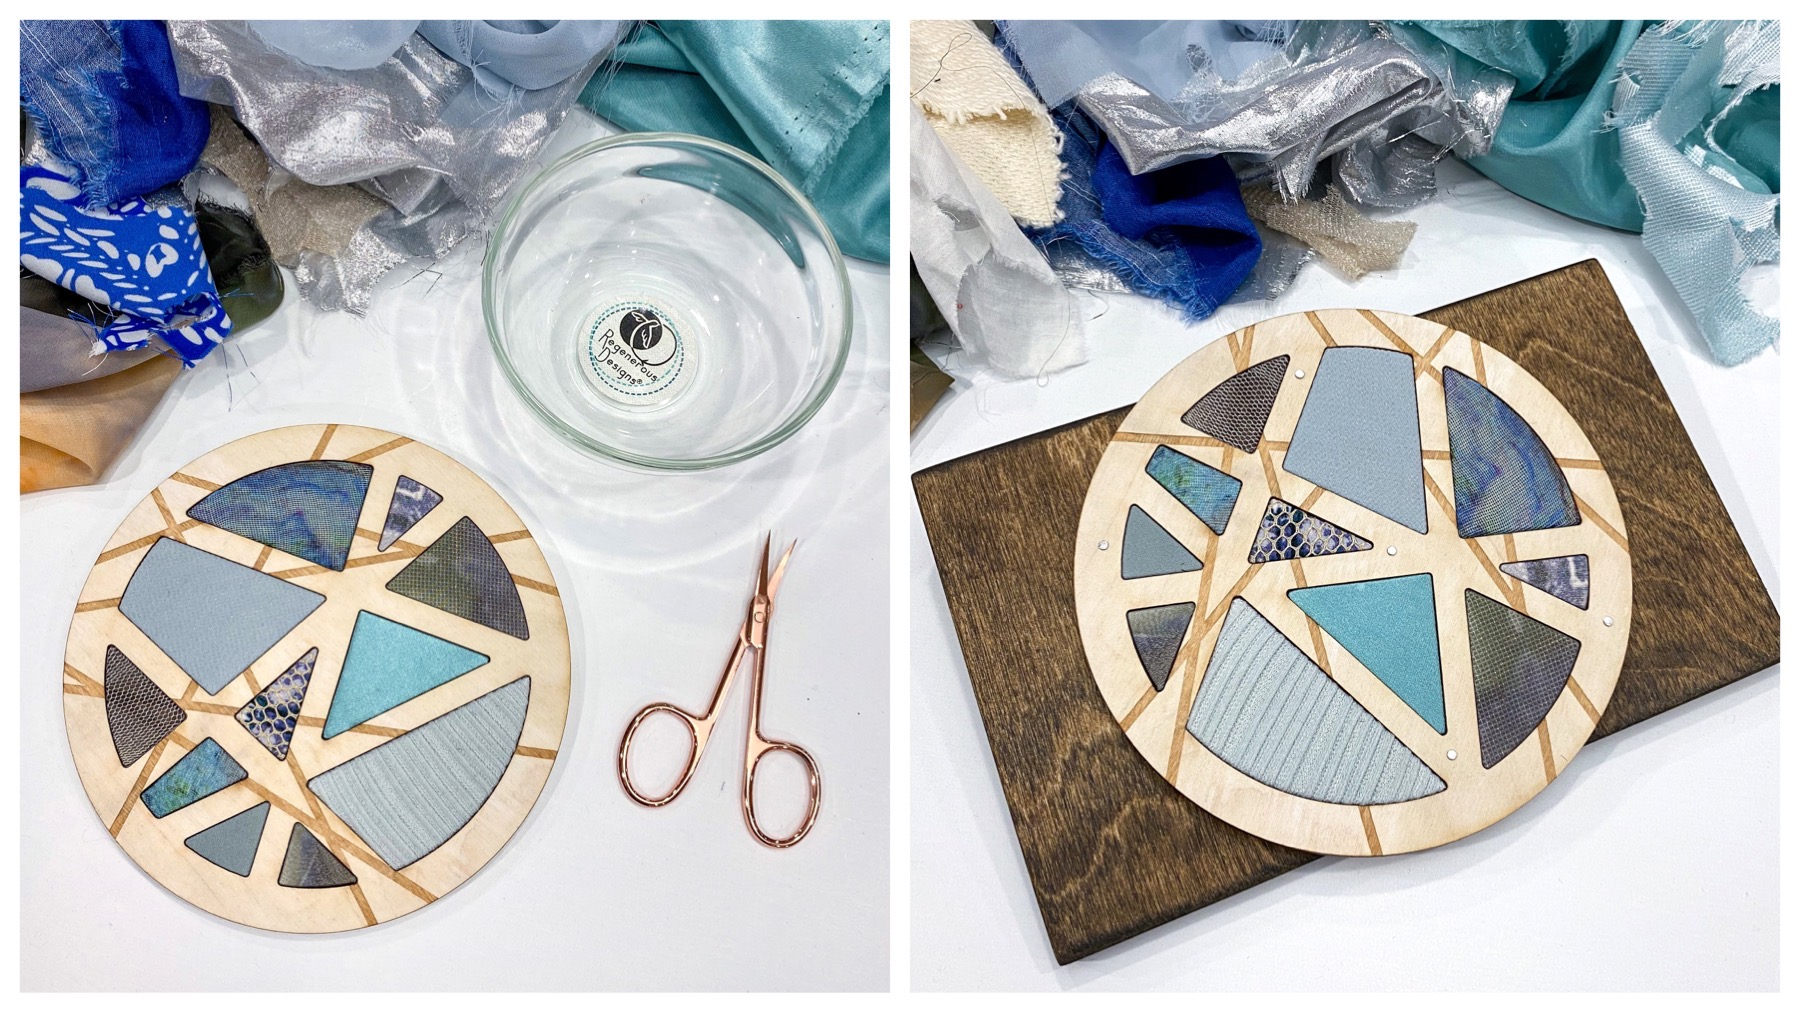 DIY art kit craft project - textile and wood abstract circle